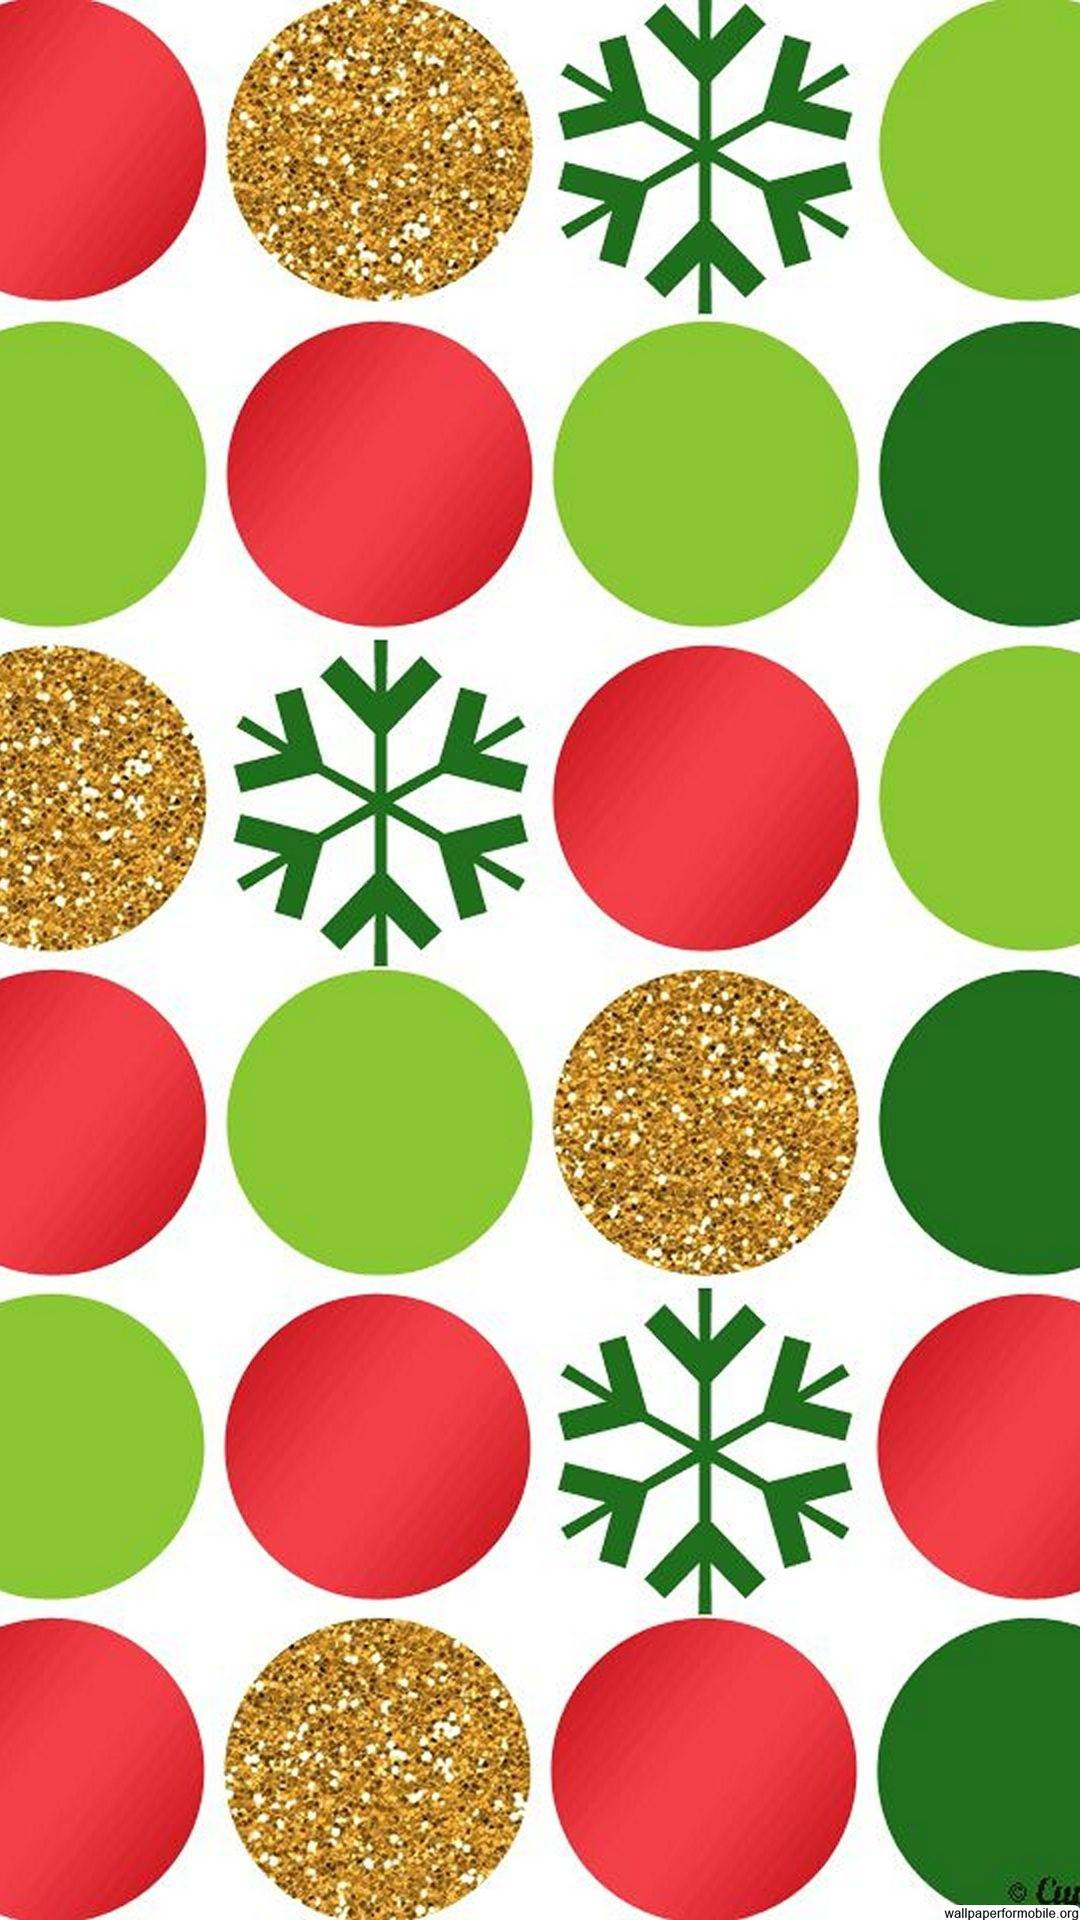 Cute Christmas Backgrounds For Iphone Wallpaper for Mobile